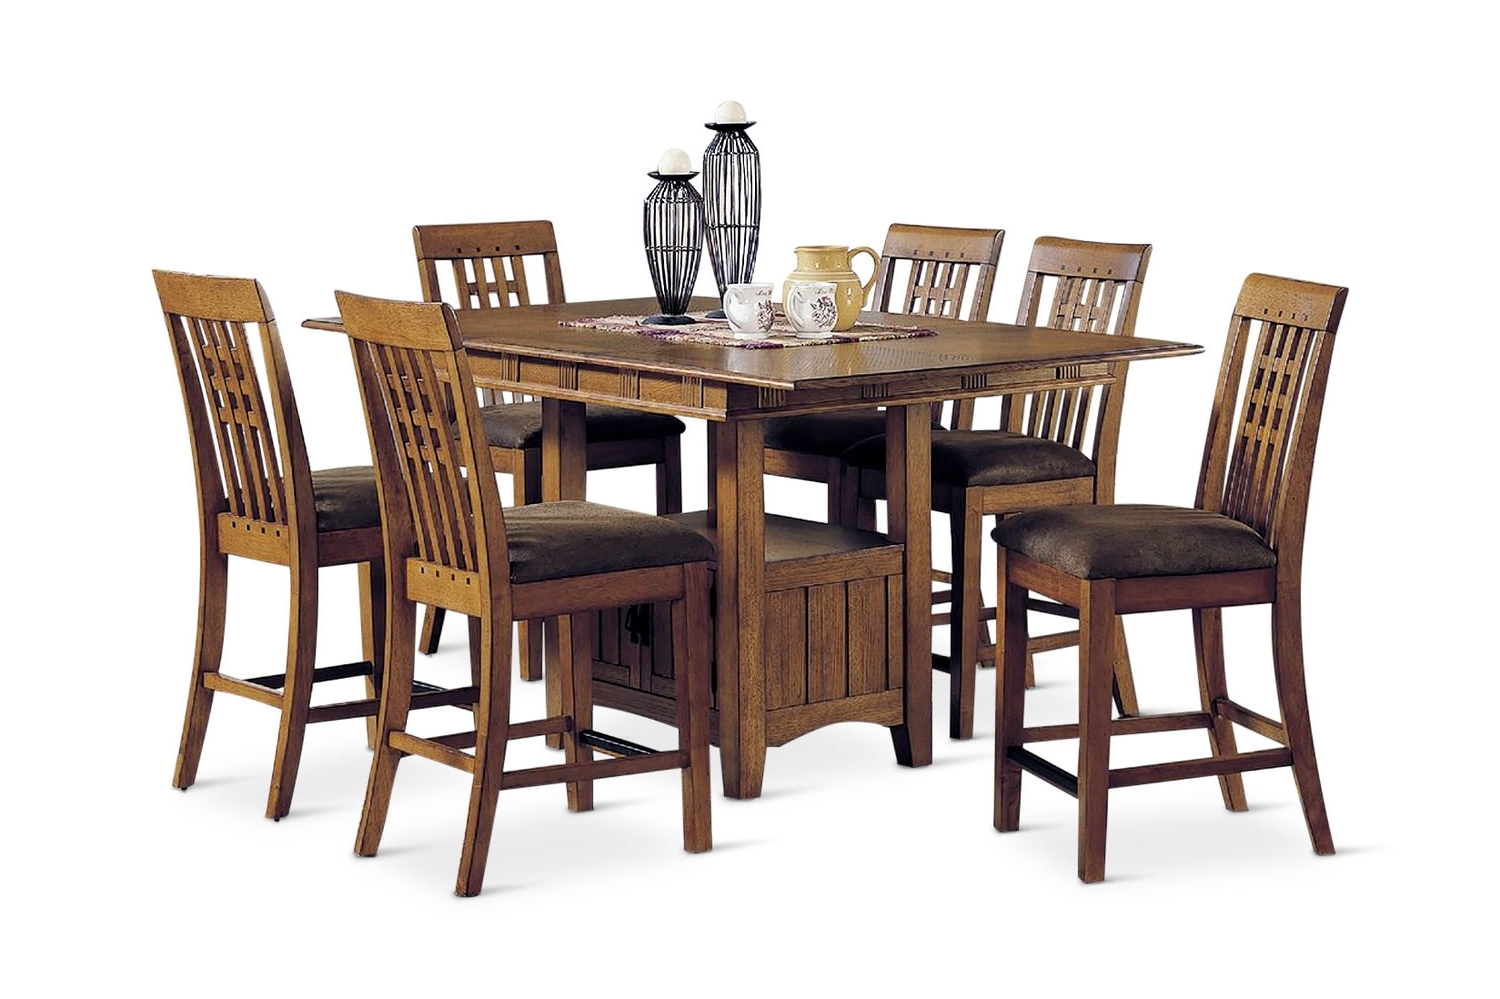 Dining Sets – Kitchen & Dining Room Sets – Hom Furniture With Best And Newest Craftsman 5 Piece Round Dining Sets With Side Chairs (View 8 of 25)